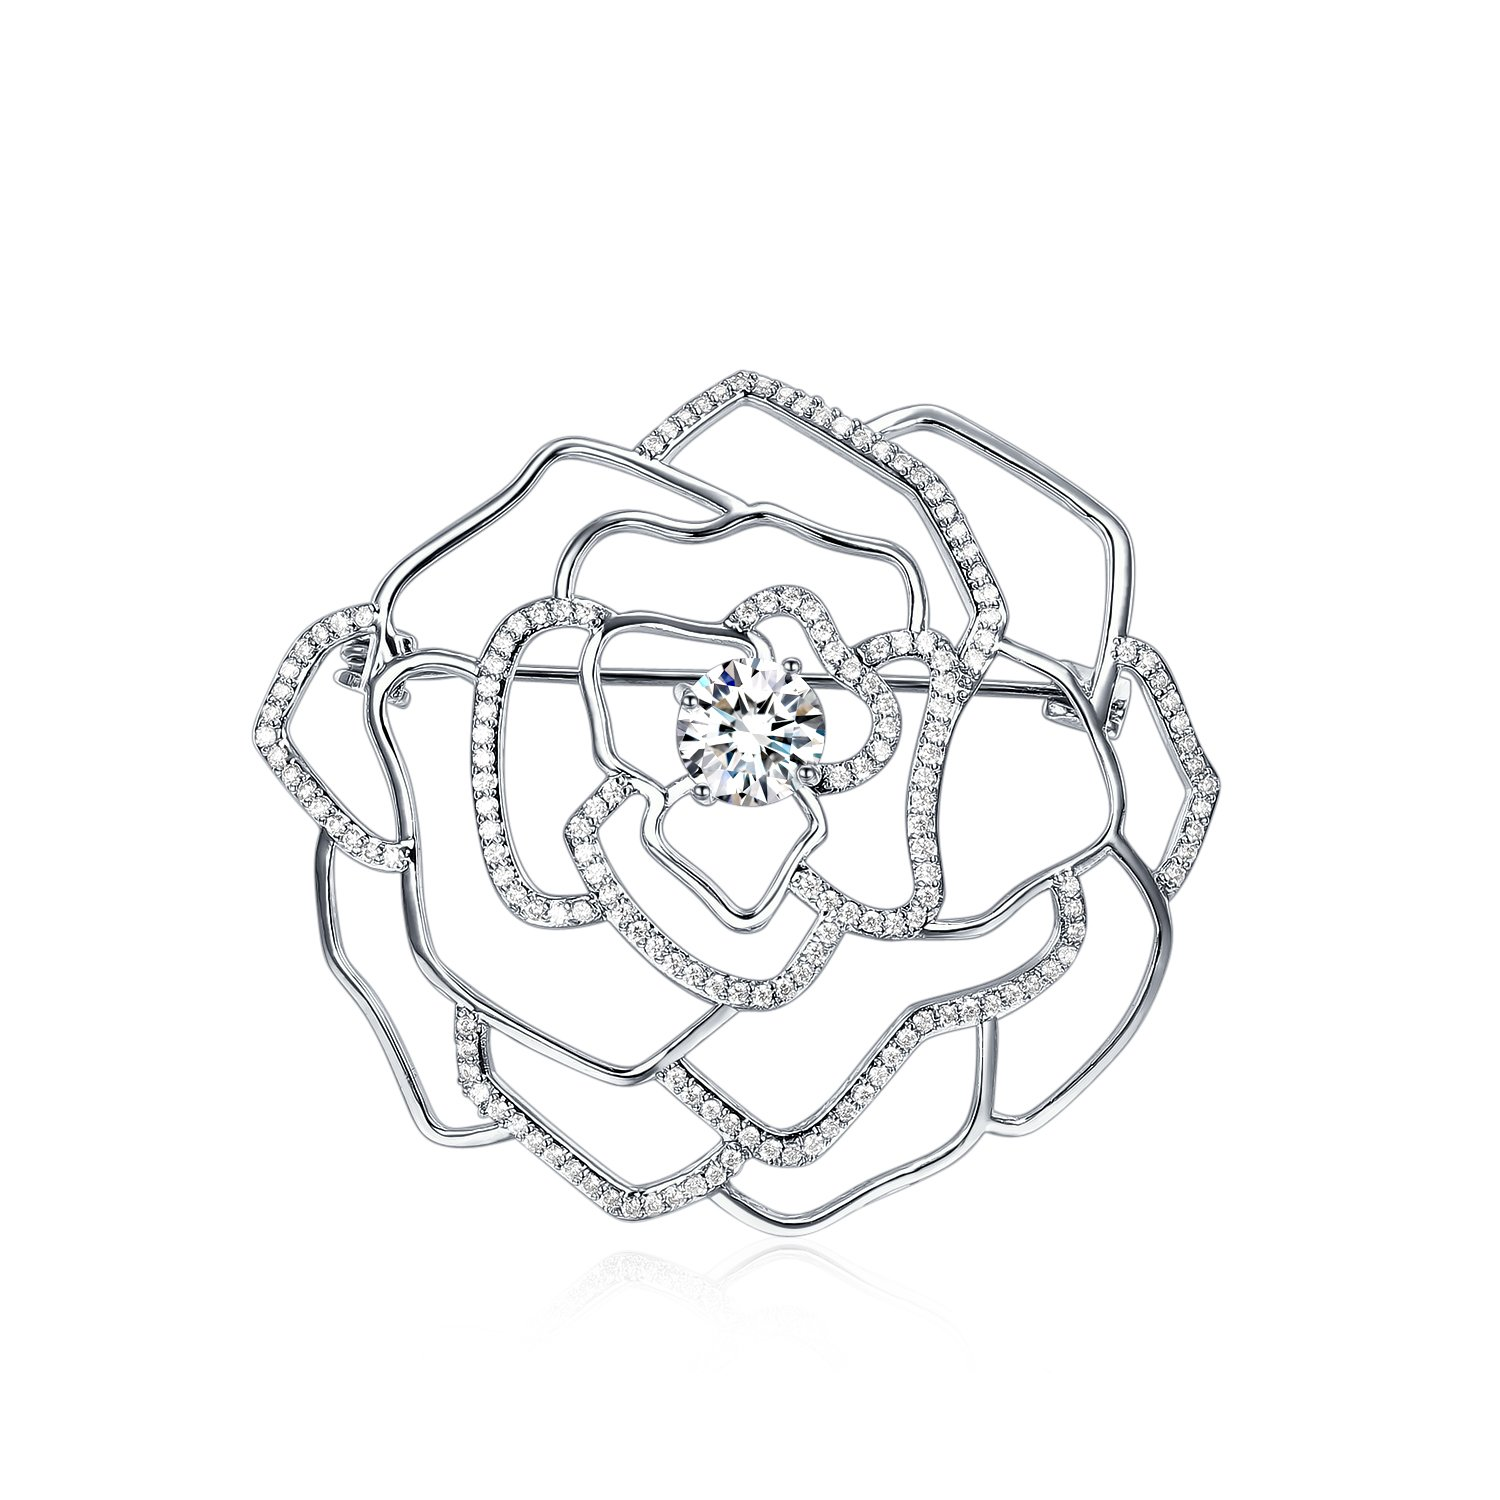 UMODE Peony Brooches, Hallow Cubic Zirconia Pins for Women